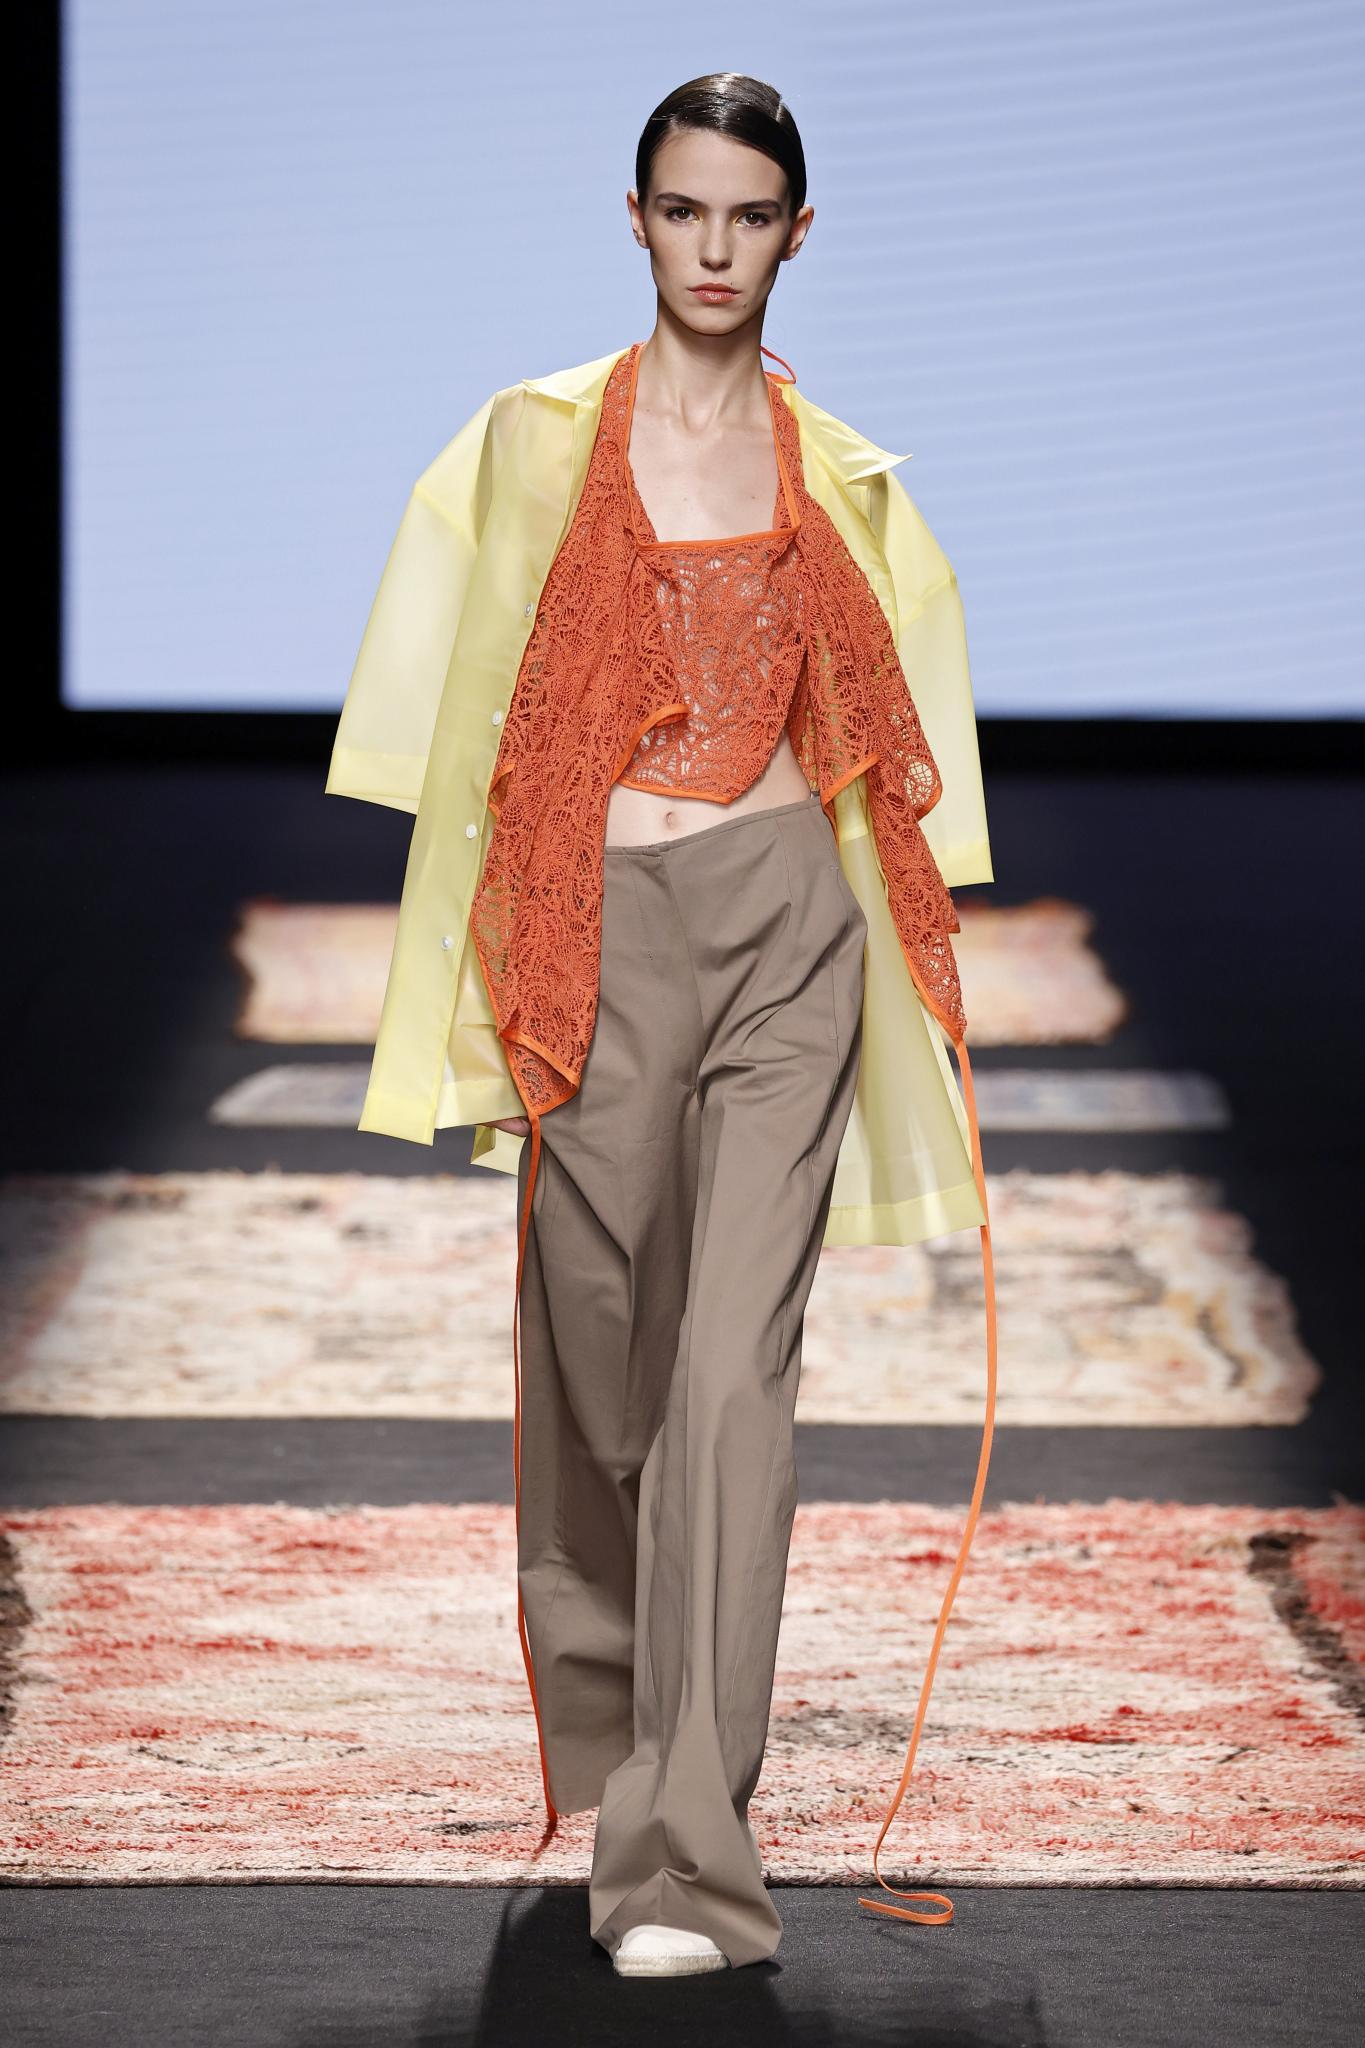 Sustainable Designers, sustainable fashion, madrid fashion week, mercedes benz fashion week madrid, fashion week madrid 2021, Maria Lafuente, Luxiders Magazine, Fashion in Madrid, sustainable fashion designers, sustainable fashion Spanish designers, Fashion made in Spain